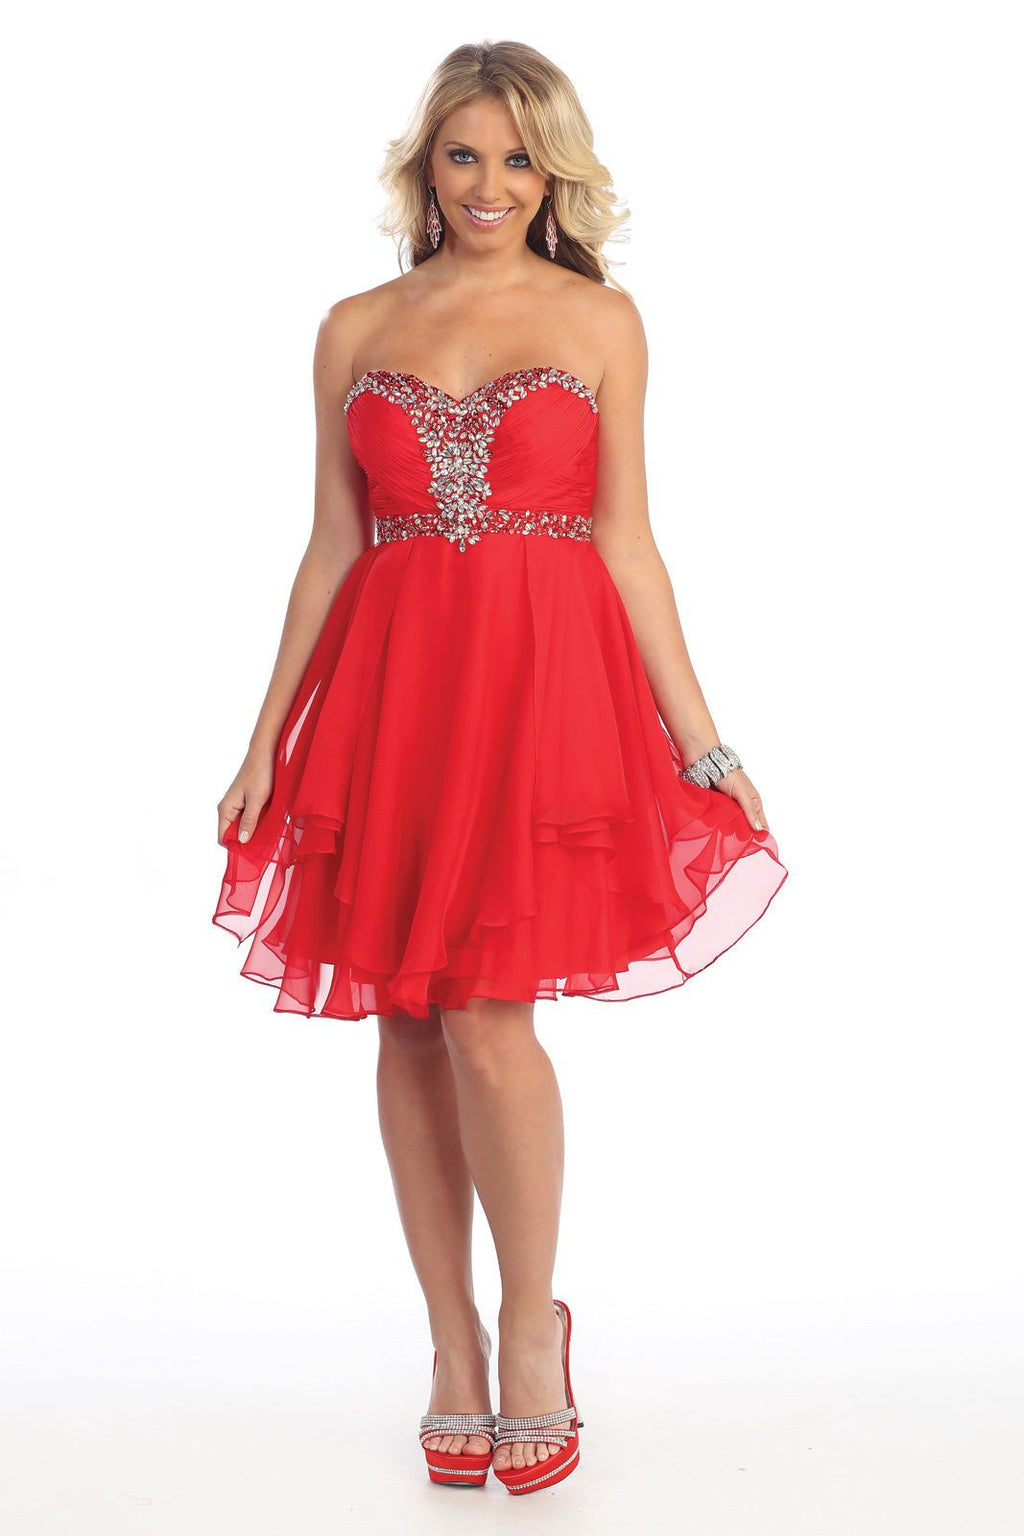 Short Prom Plus Size Homecoming Cocktail Dress - The Dress Outlet Red May Queen